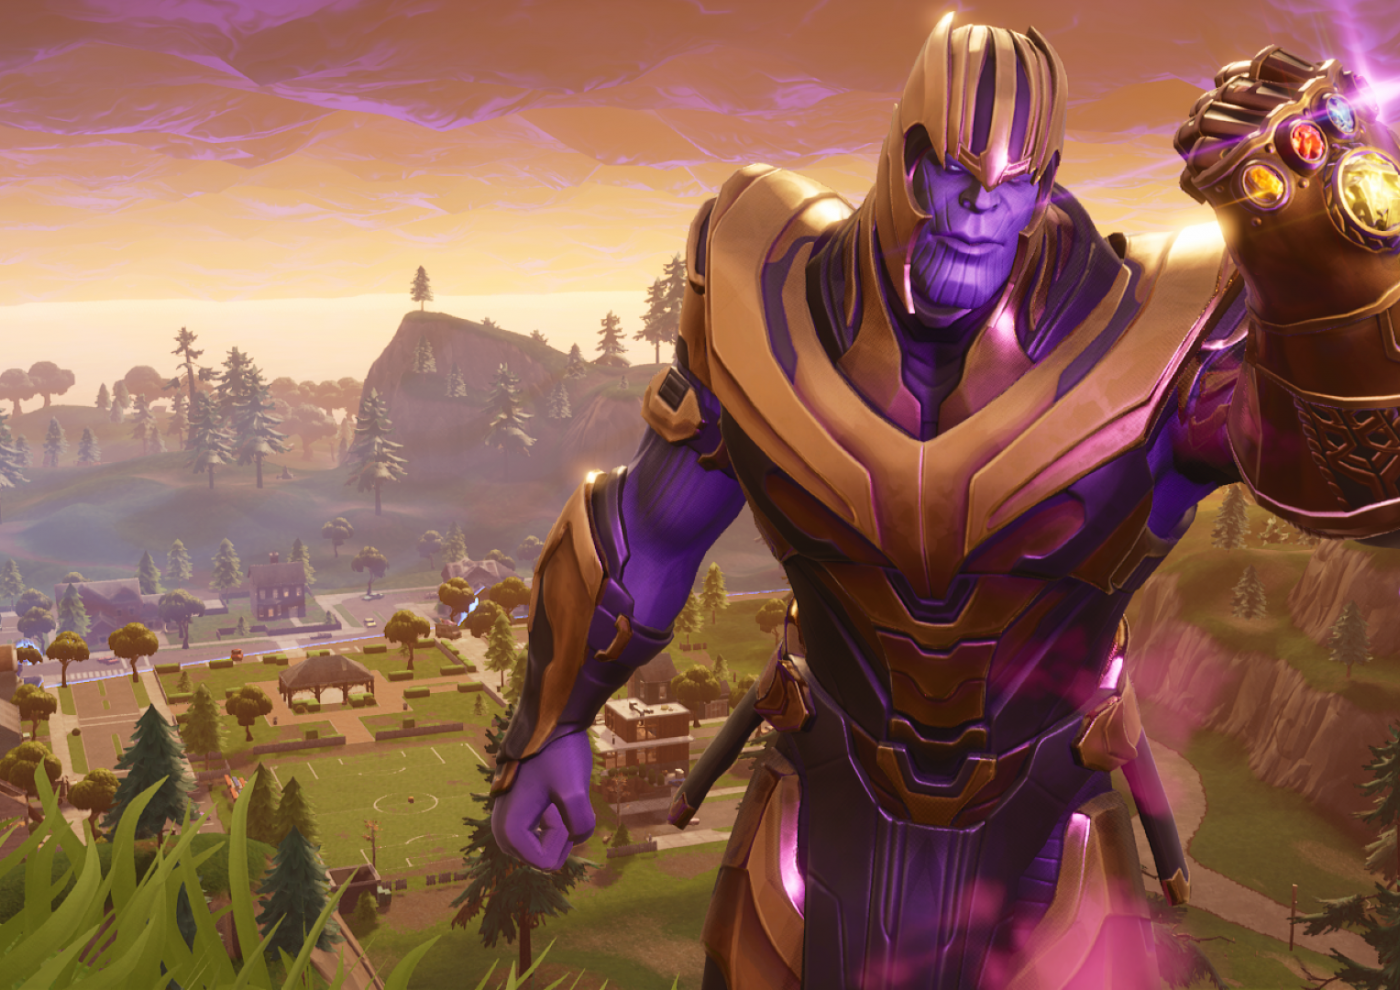 Download 1400x990 Fortnite Thanos Wallpapers   WallpaperMaiden 1400x990